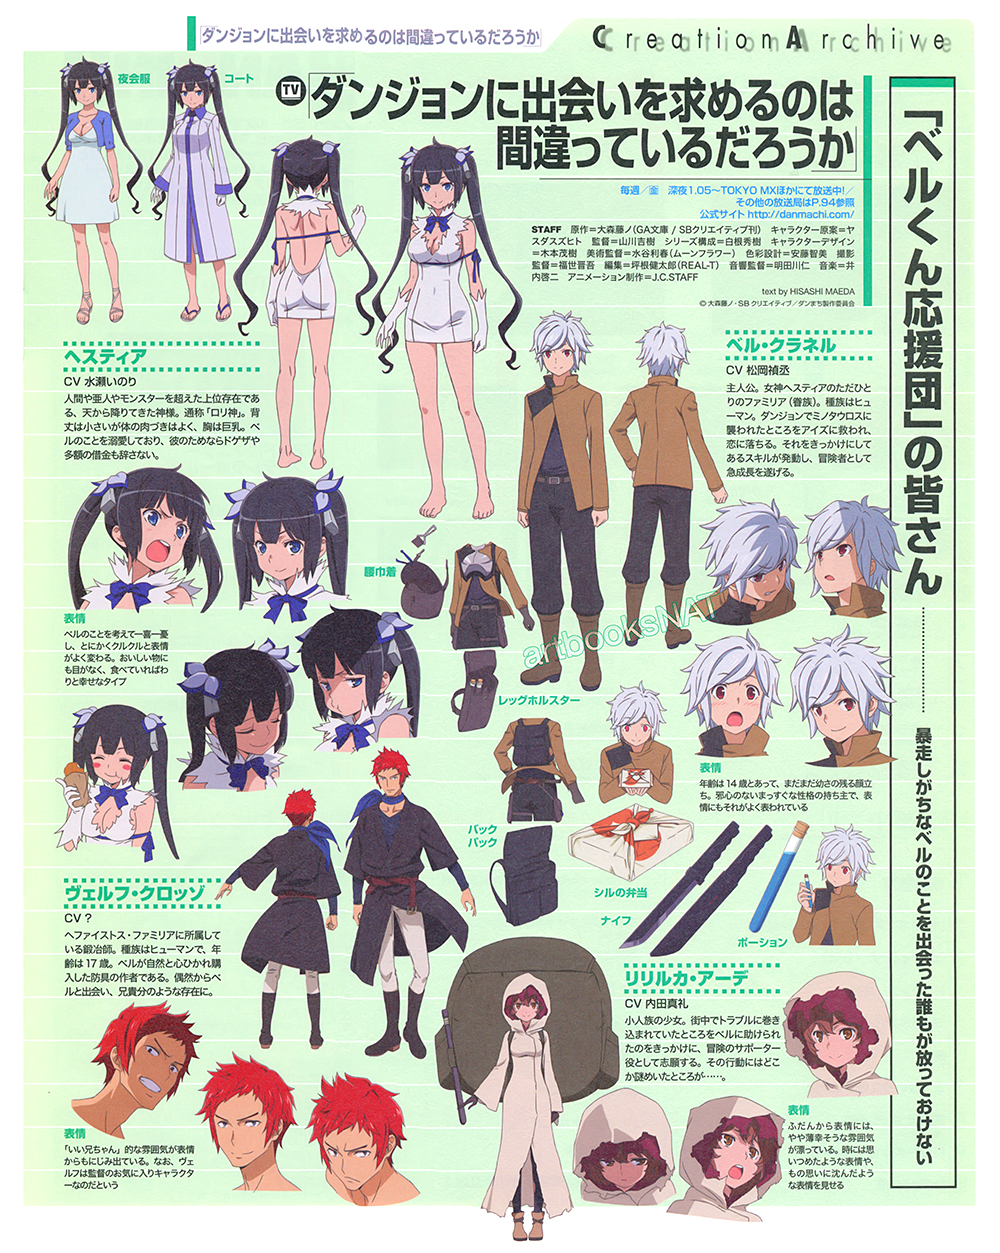 Danmachi Anime Character Designs Revealed in NewType 1